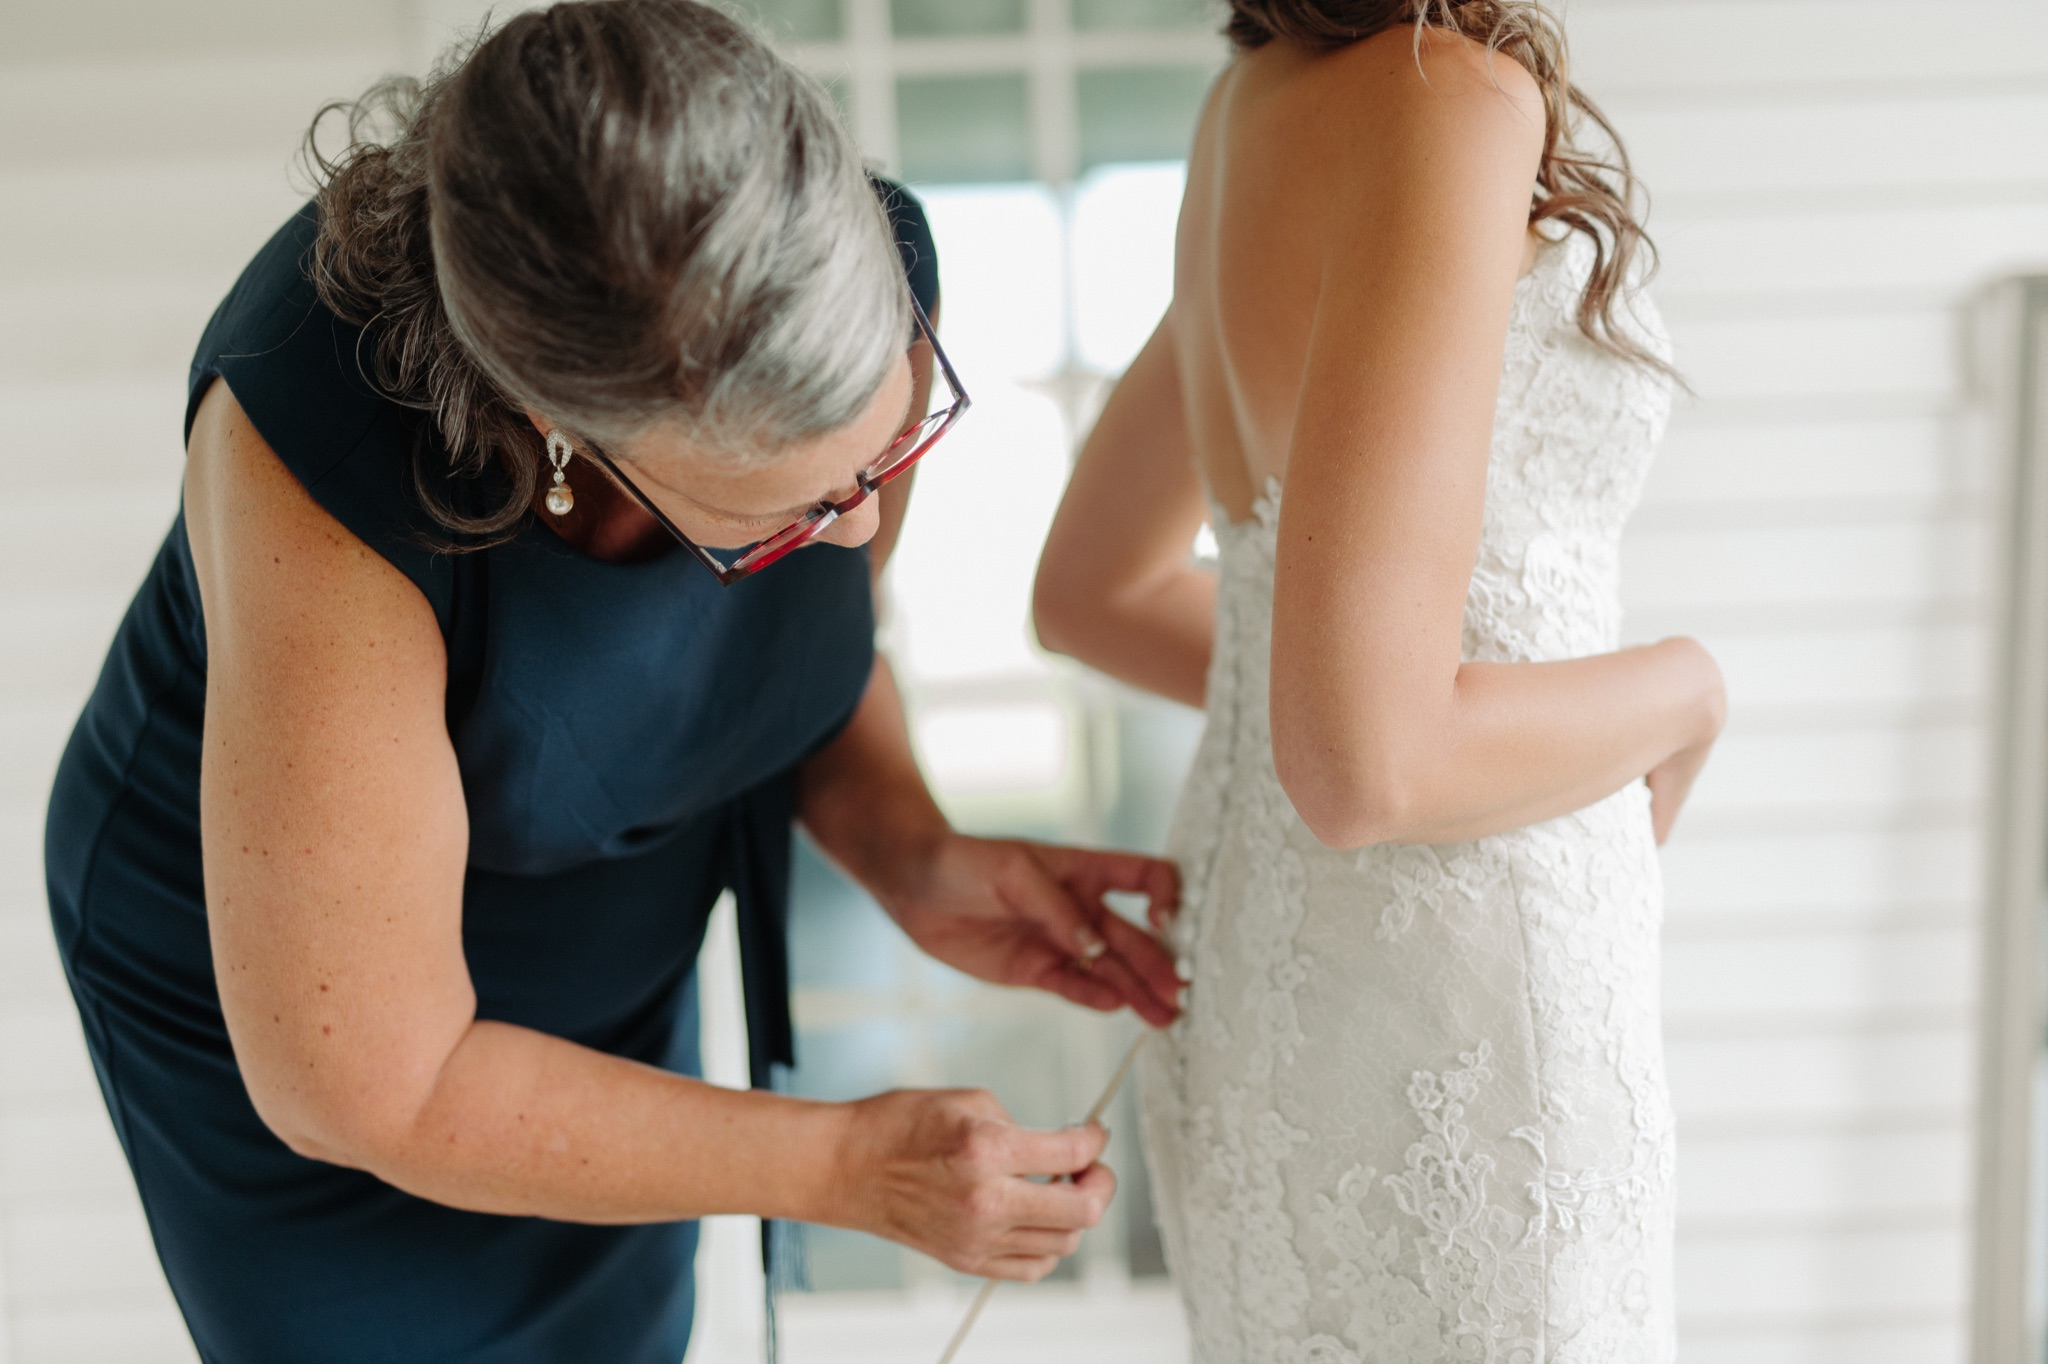 mother of bride helping bride with dress